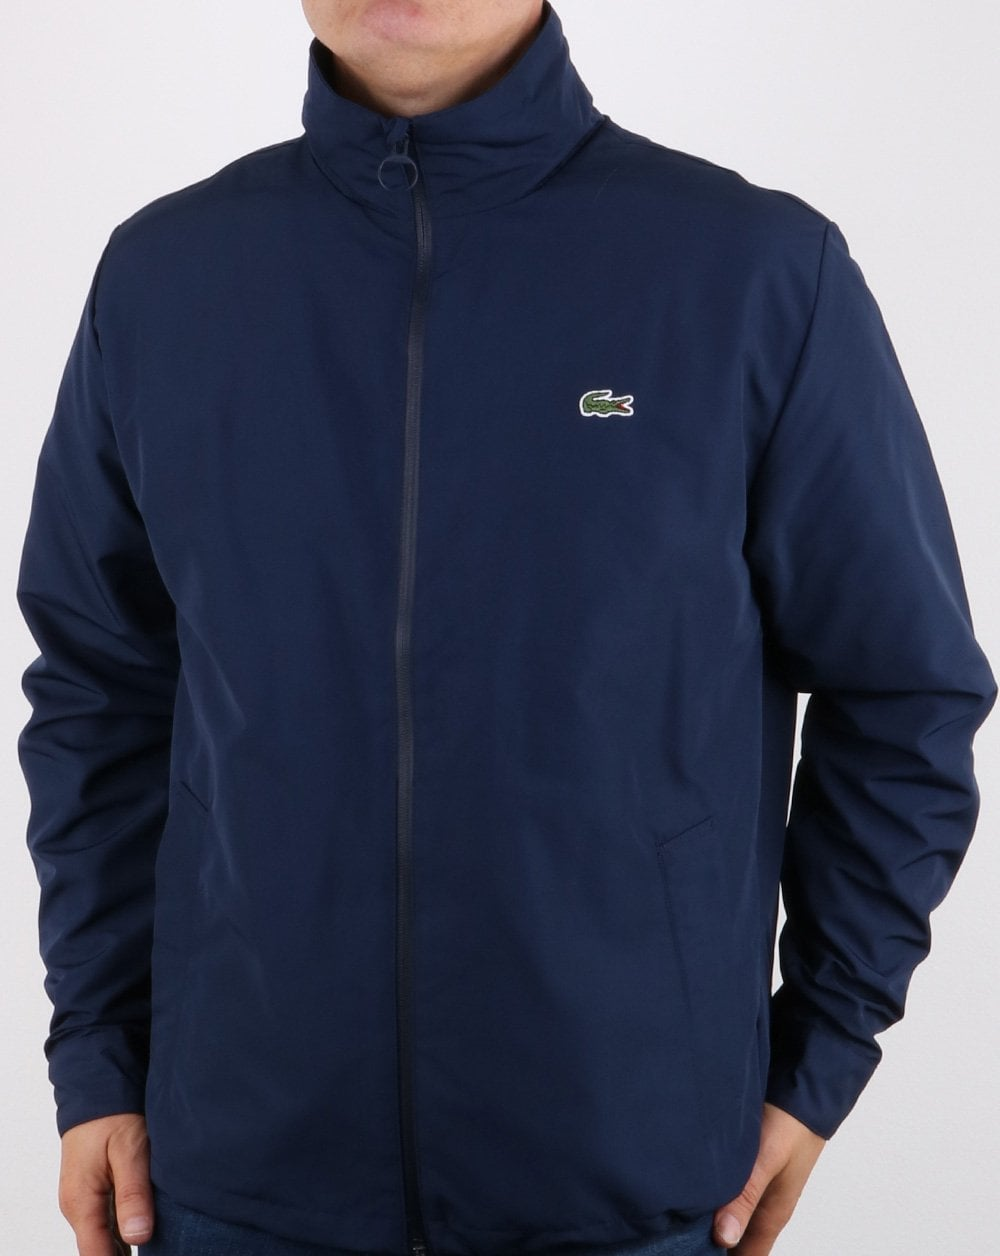 305a2dc91 Lacoste Lacoste Jacket Concealed Hood Navy